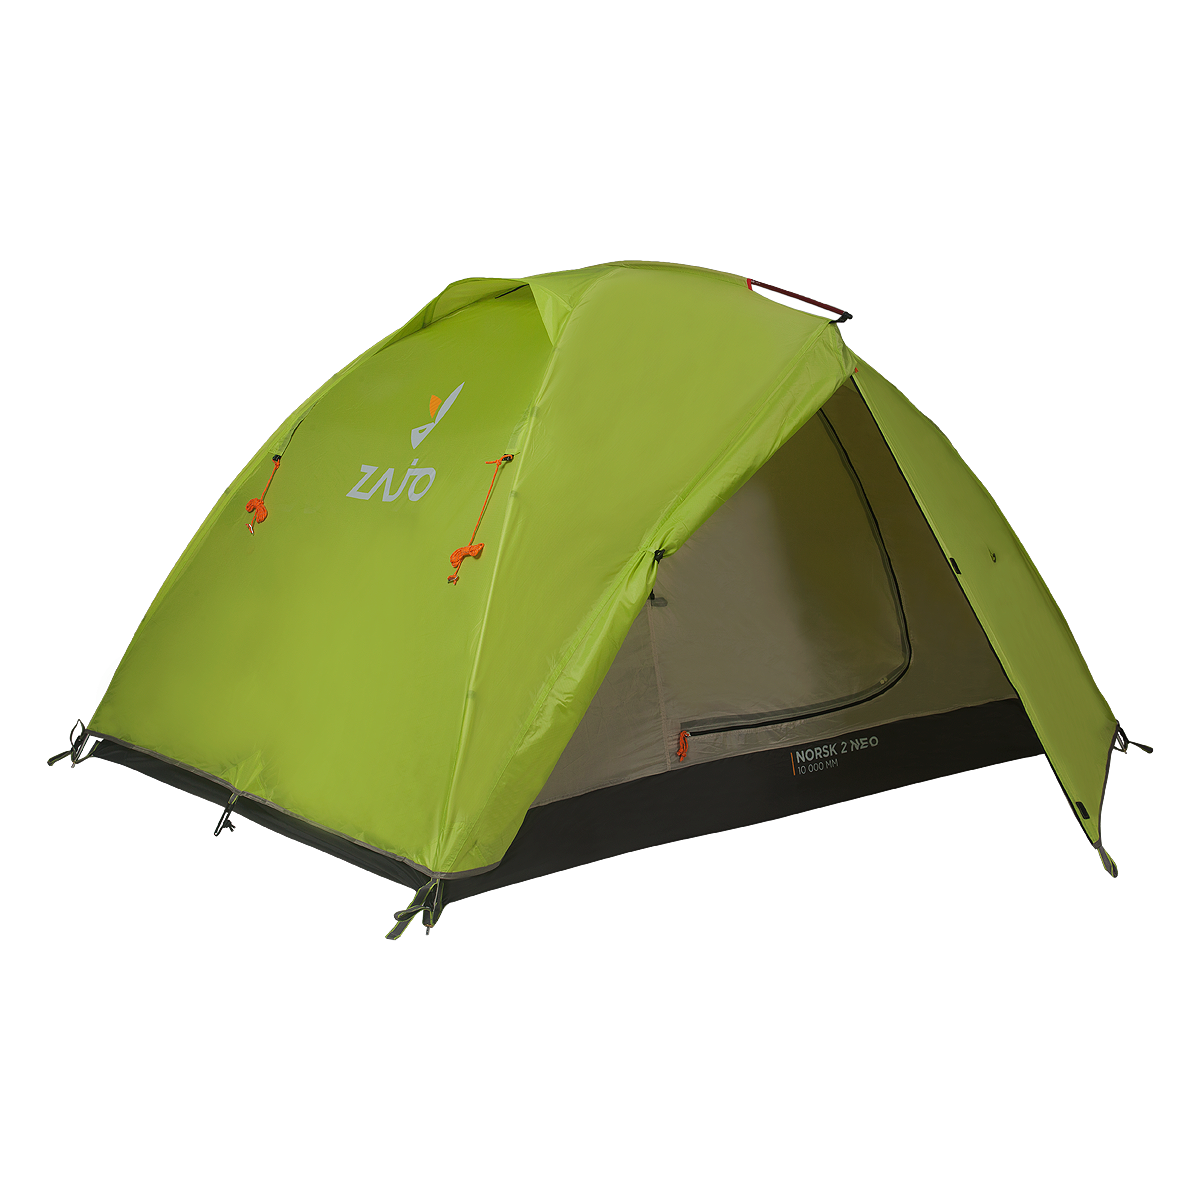 Outdoor drawing tent. Norsk neo zajo worldwide